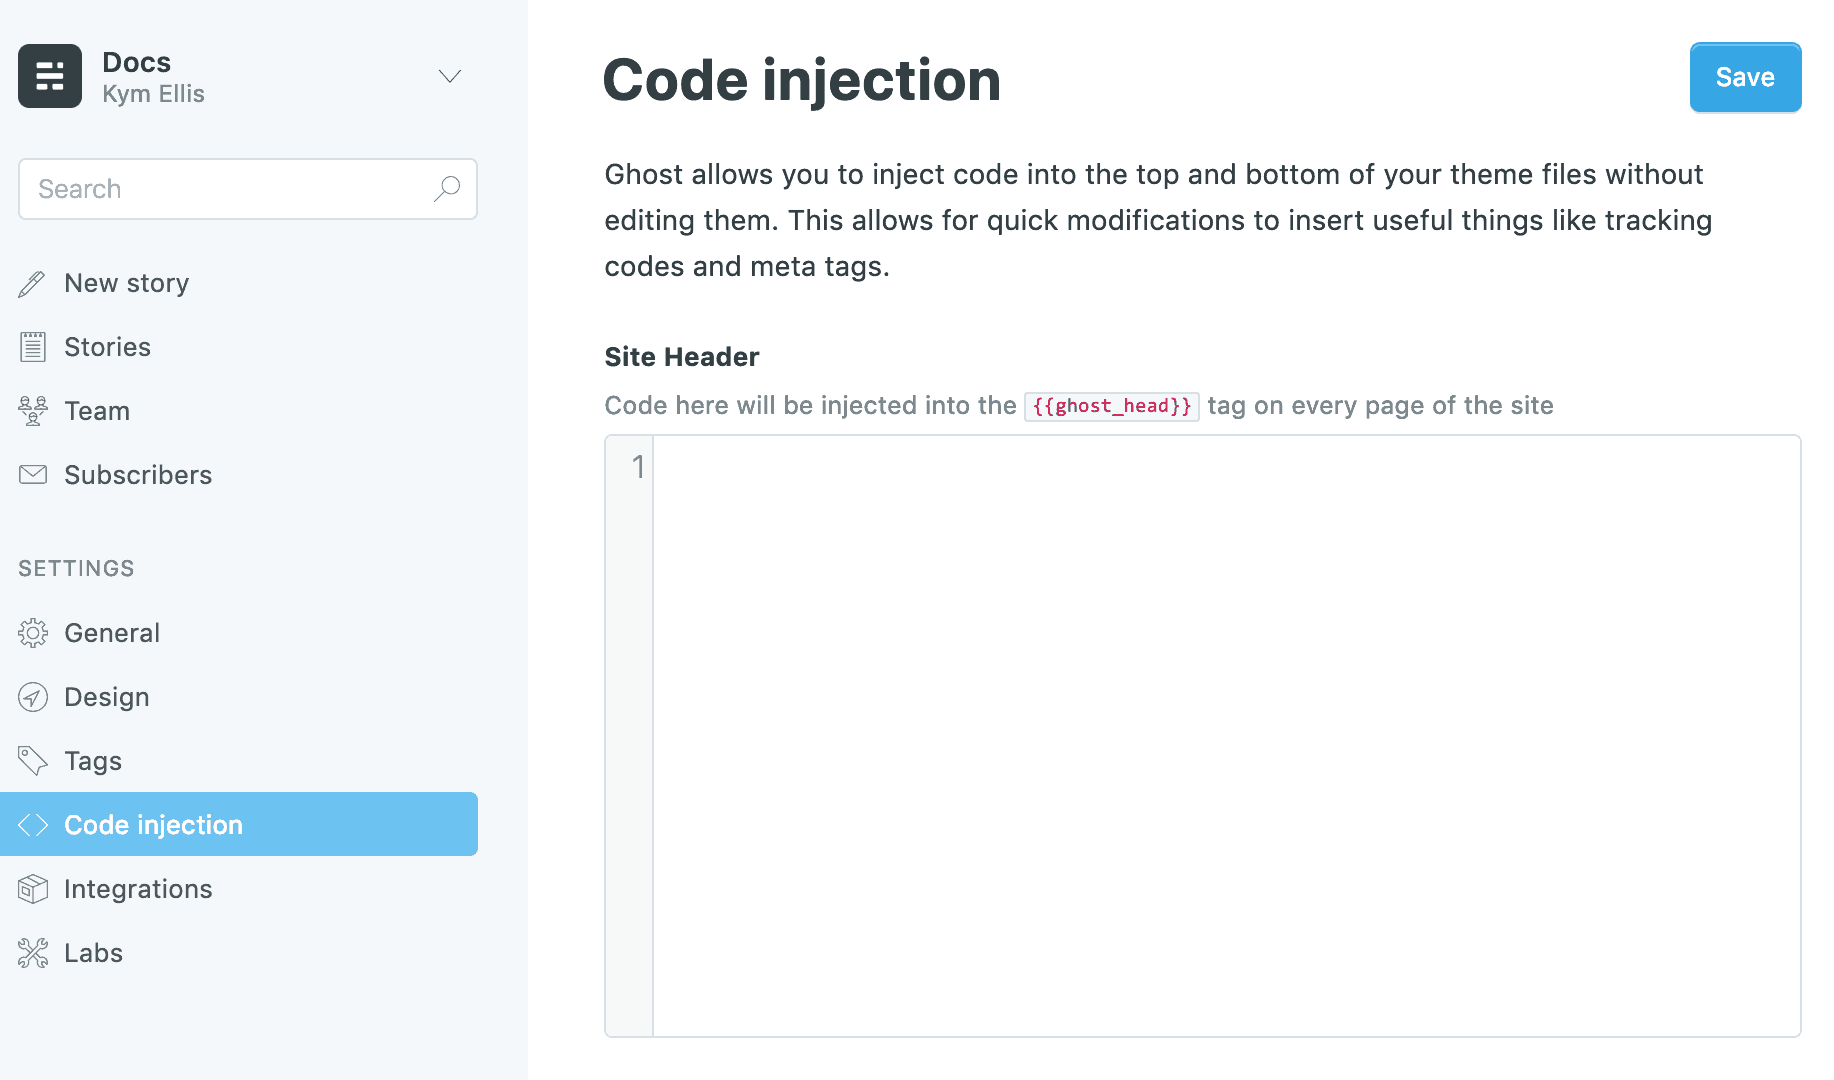 Code injection in ghost